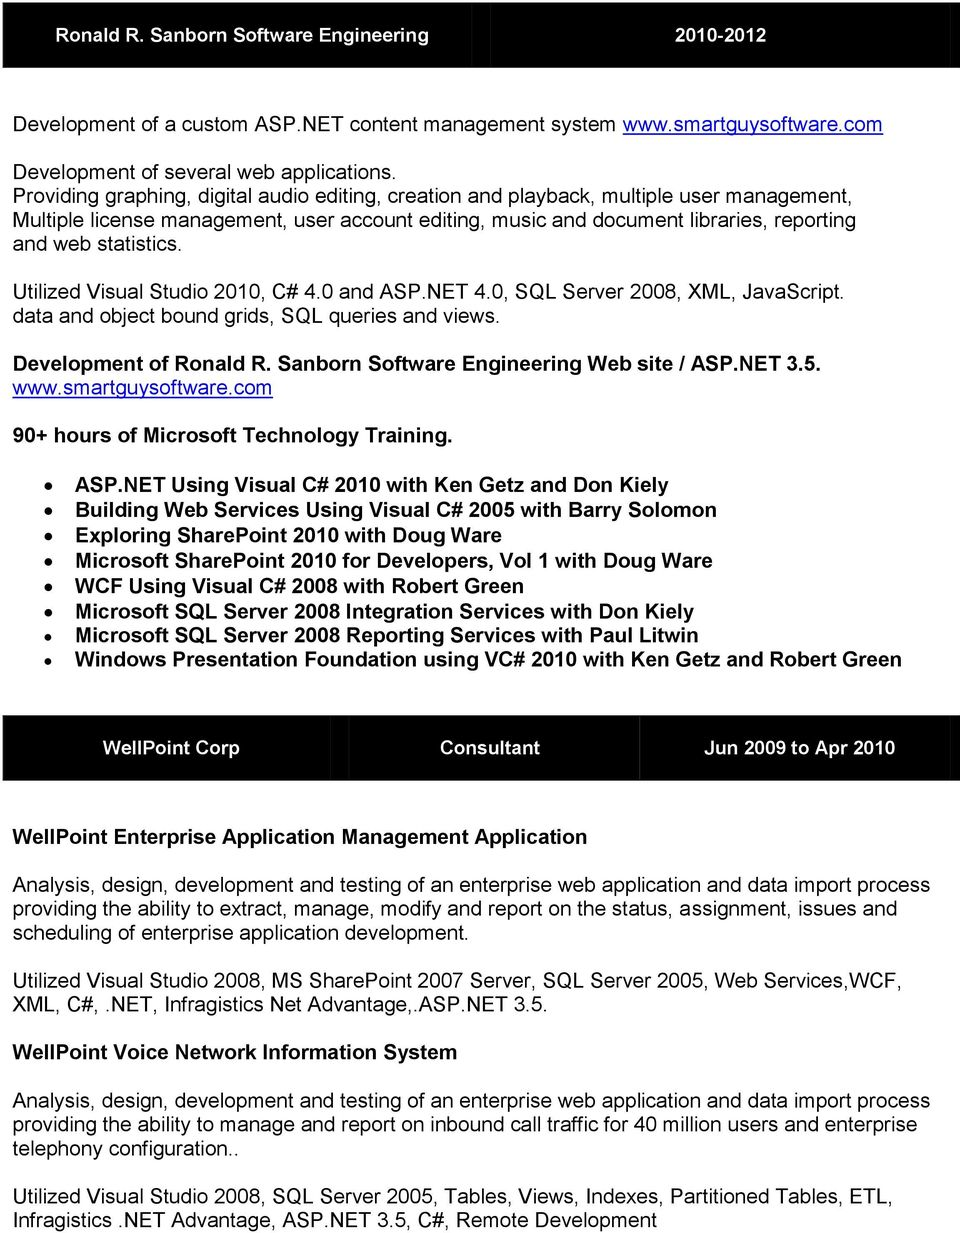 statistics. Utilized Visual Studio 2010, C# 4.0 and ASP.NET 4.0, SQL Server 2008, XML, JavaScript. data and object bound grids, SQL queries and views. Development of Ronald R.